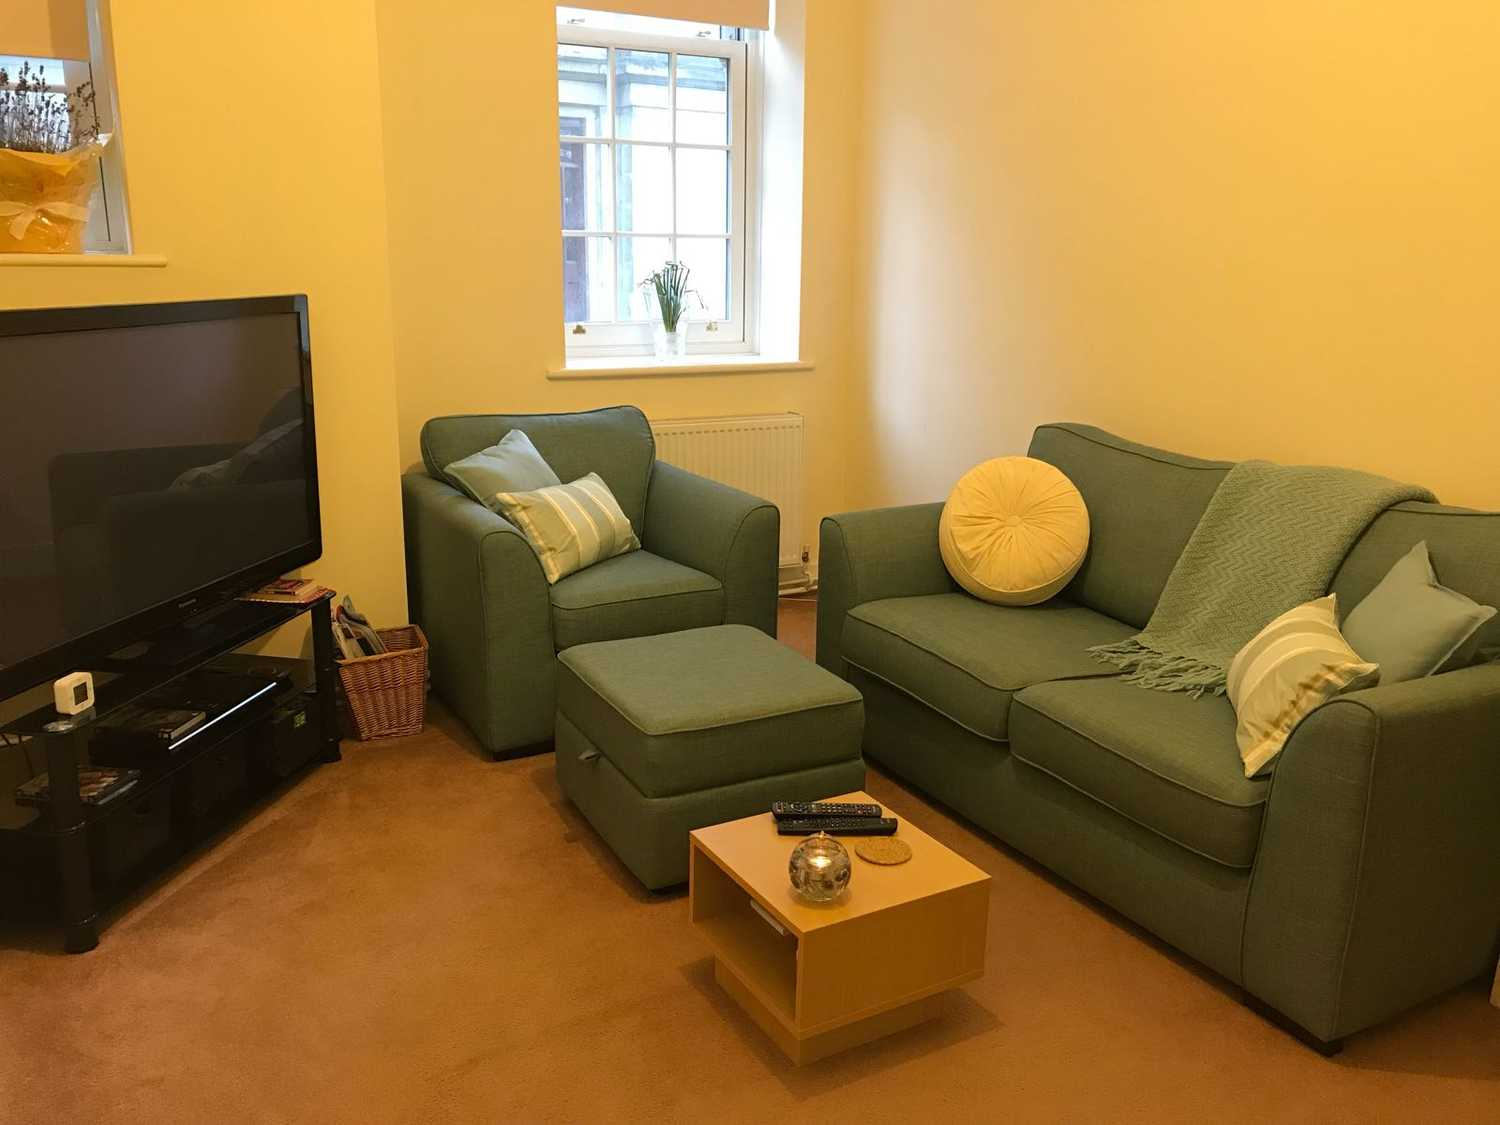 Photo of a double bed in private room in 1-bedroom flat in Regent's Park, London.